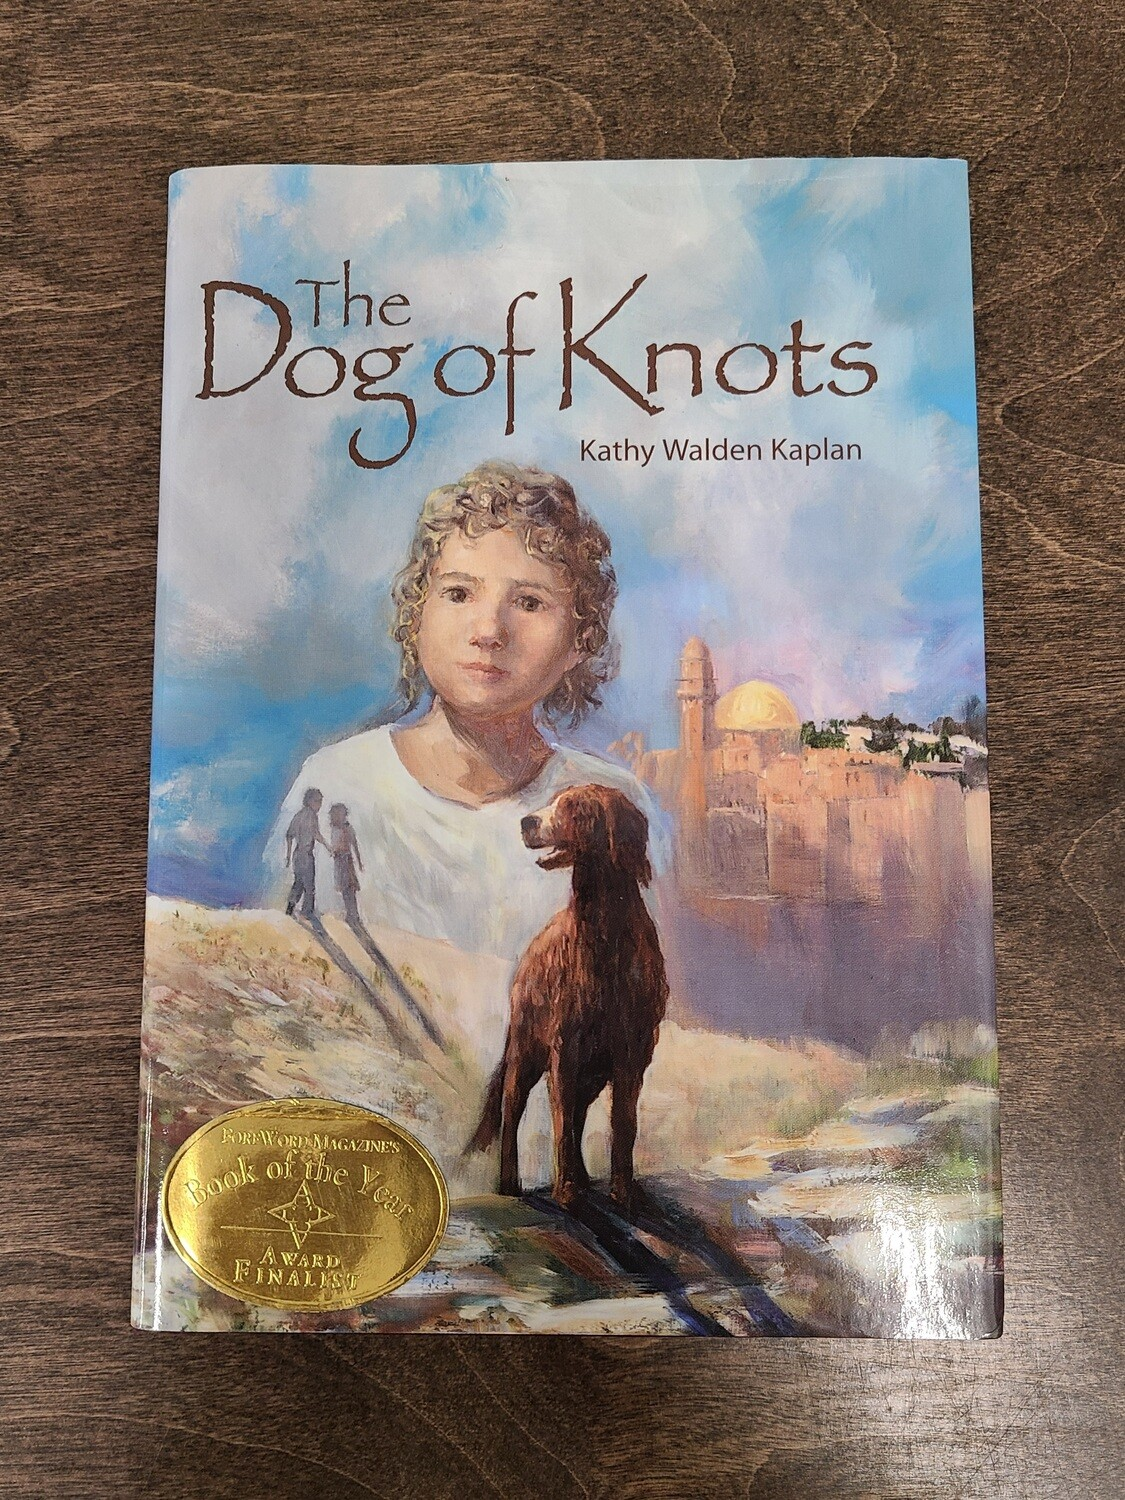 The Dog of Knots by Kathy Walden Kaplan